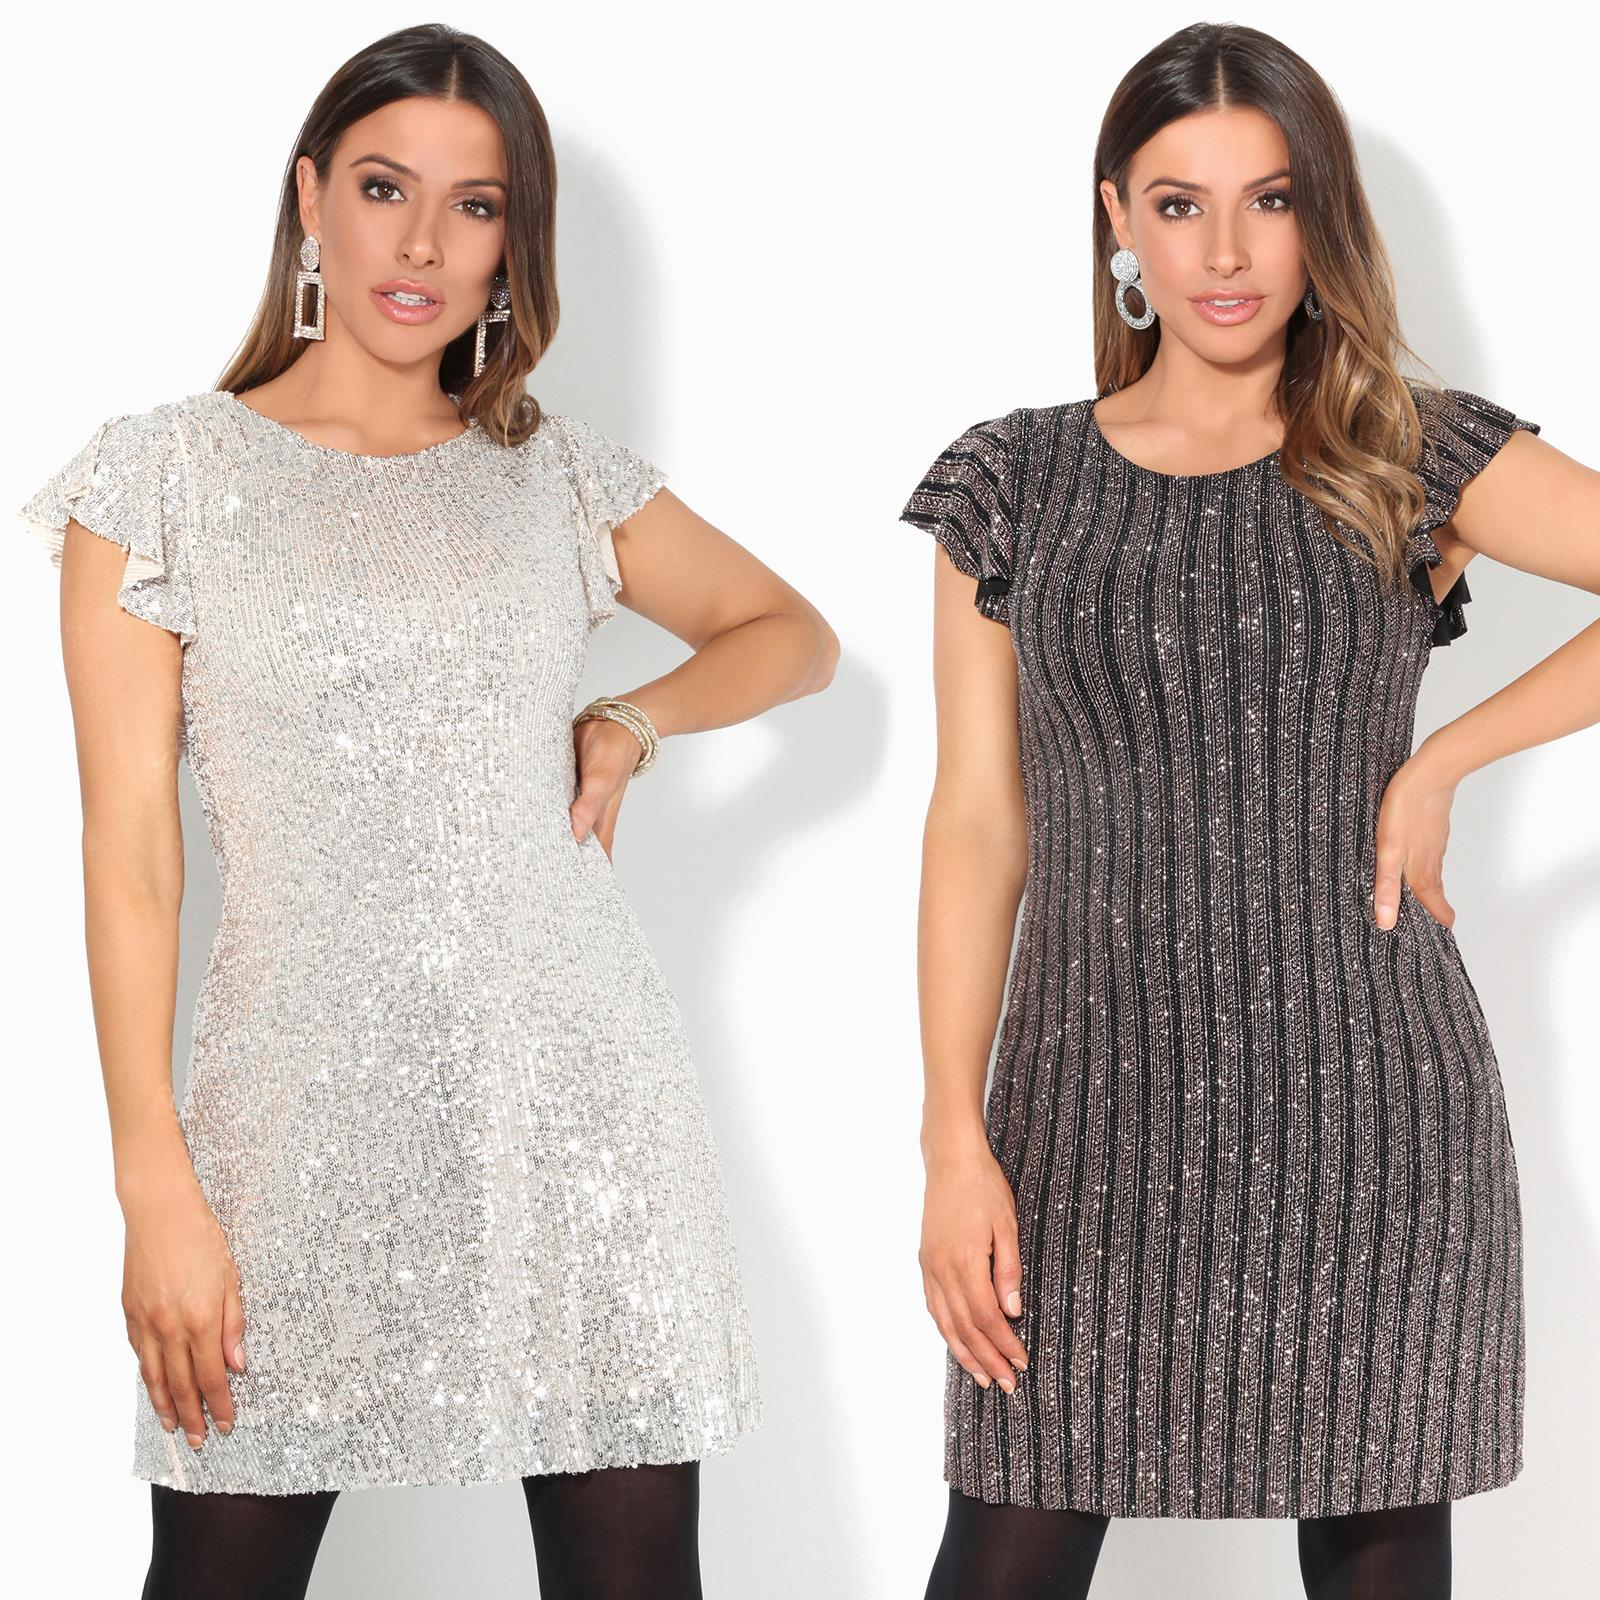 Batwing Top Polo Dress Ladies Womens LUREX GLITTER SPARKLY PARTY XMAS Bodysuit